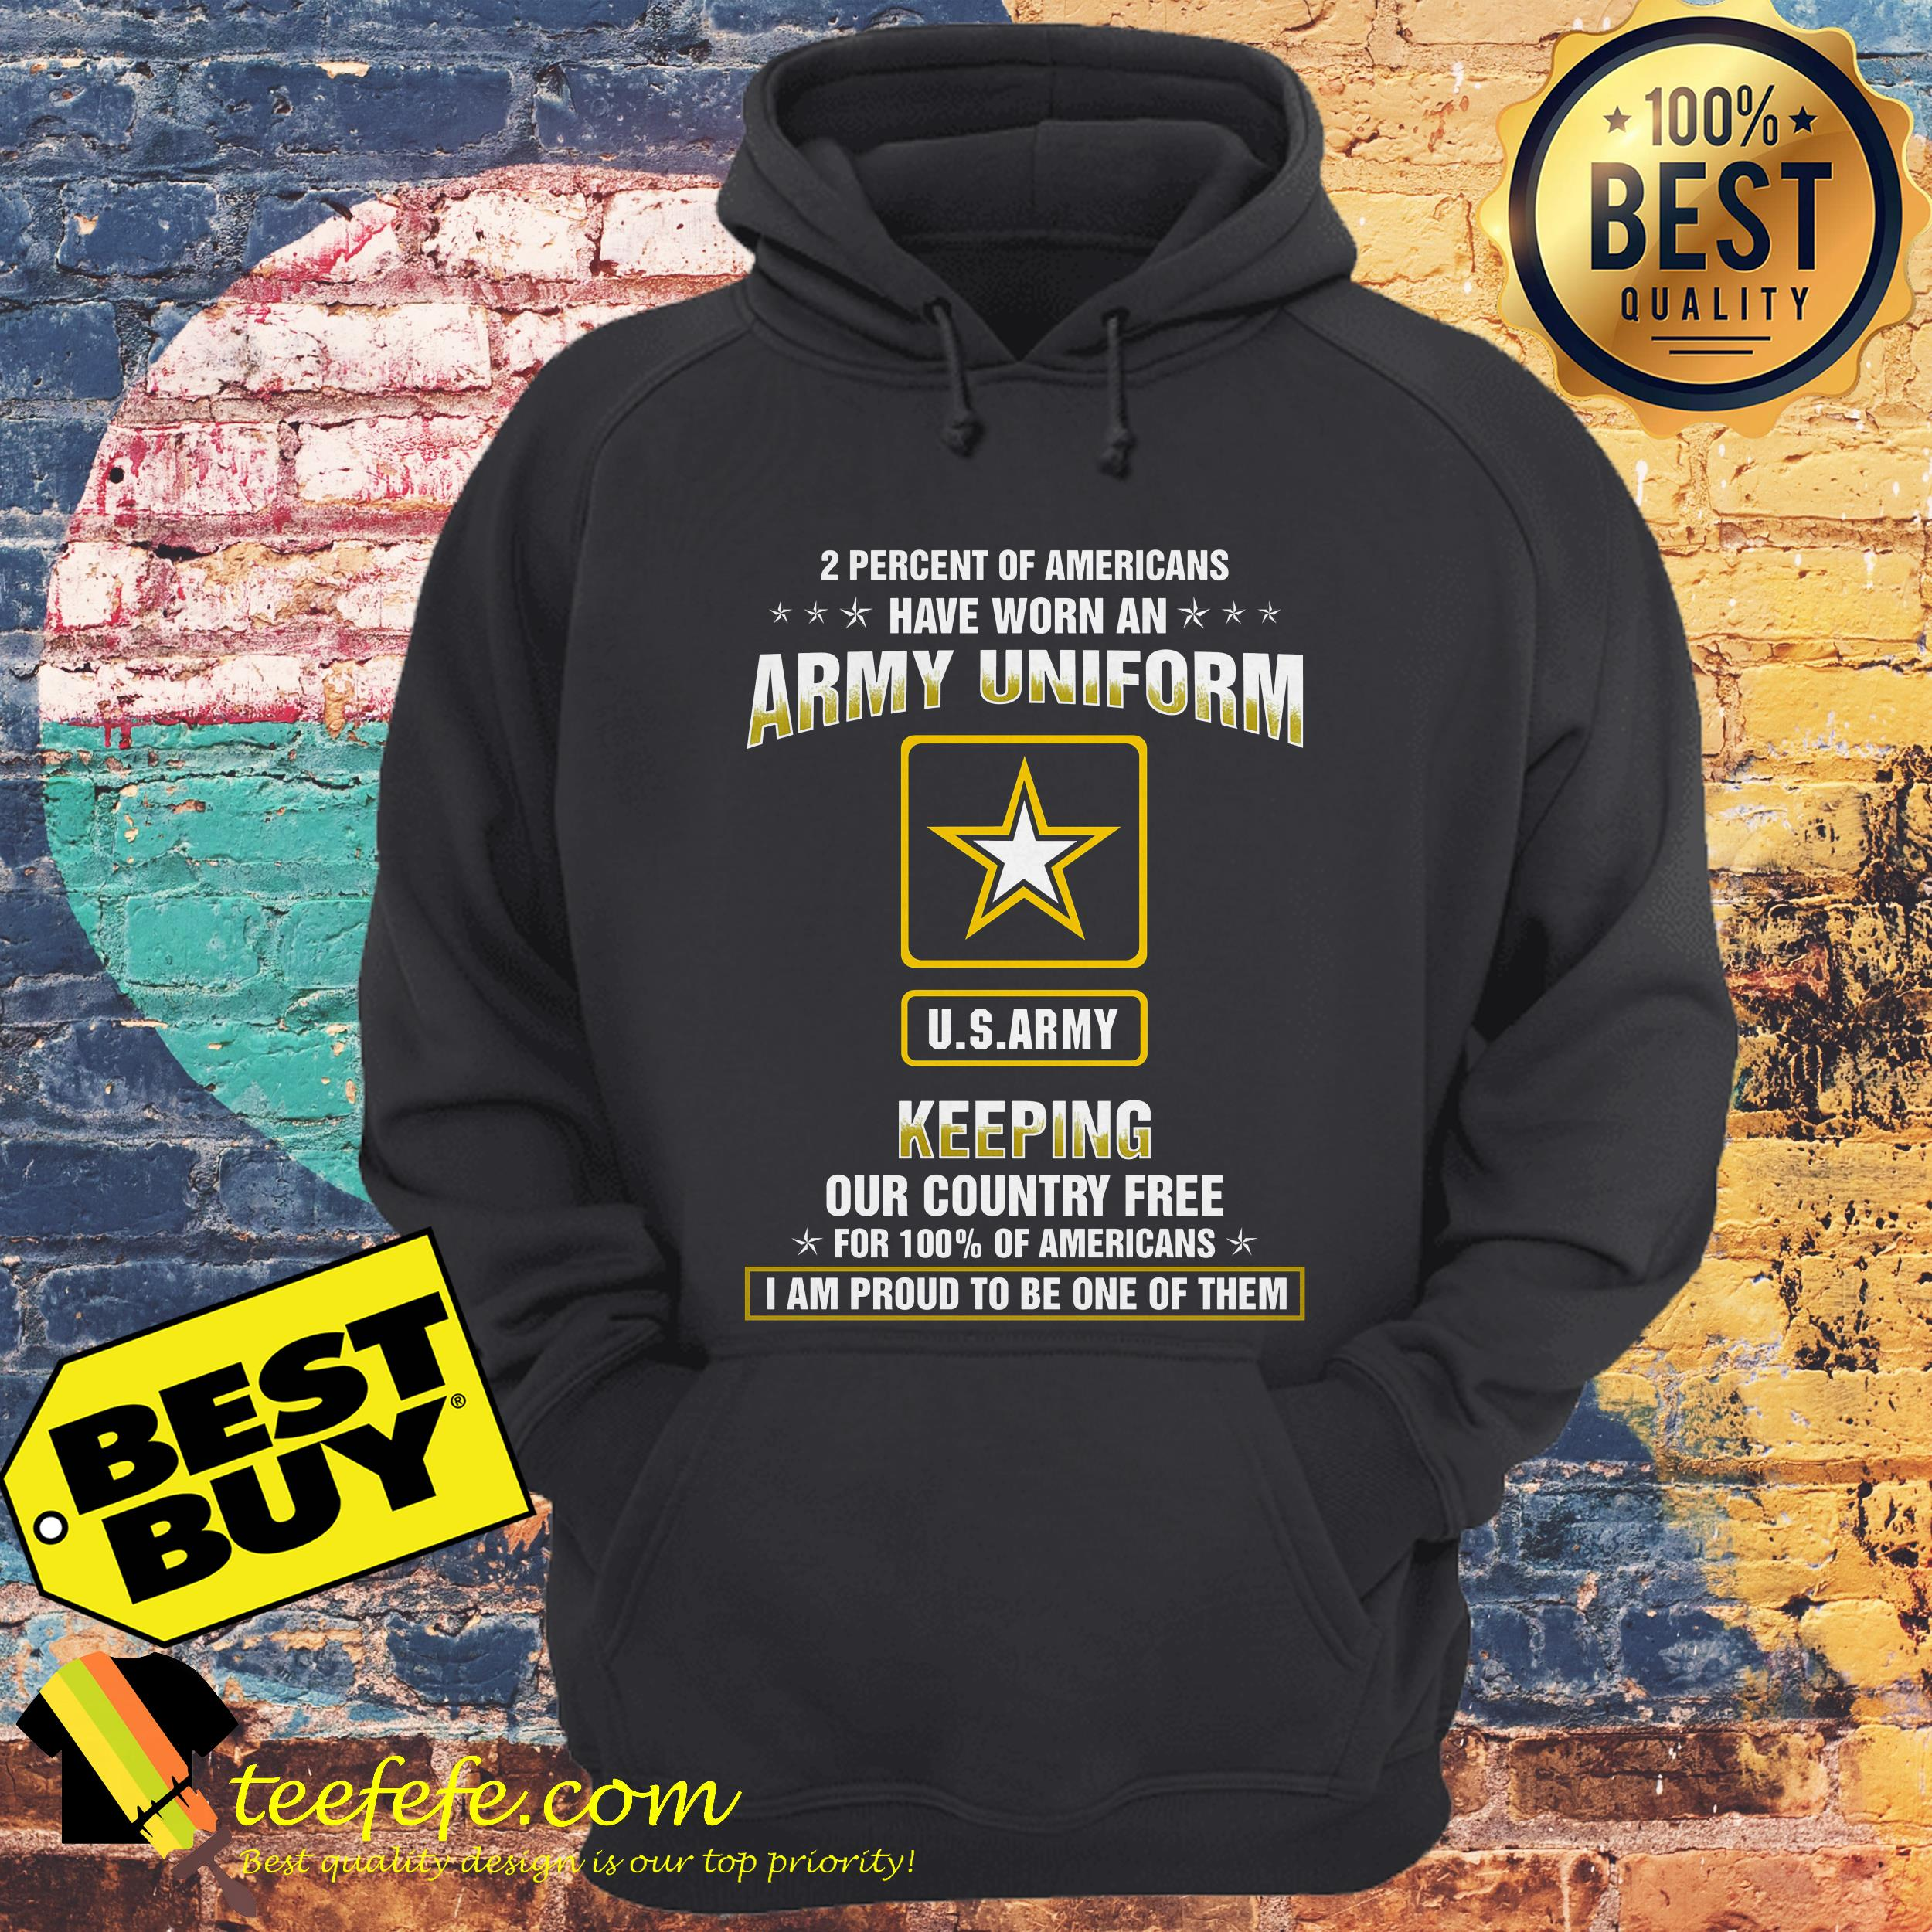 2 percent of Americans have worn an army uniform US army keeping our country free hoodie